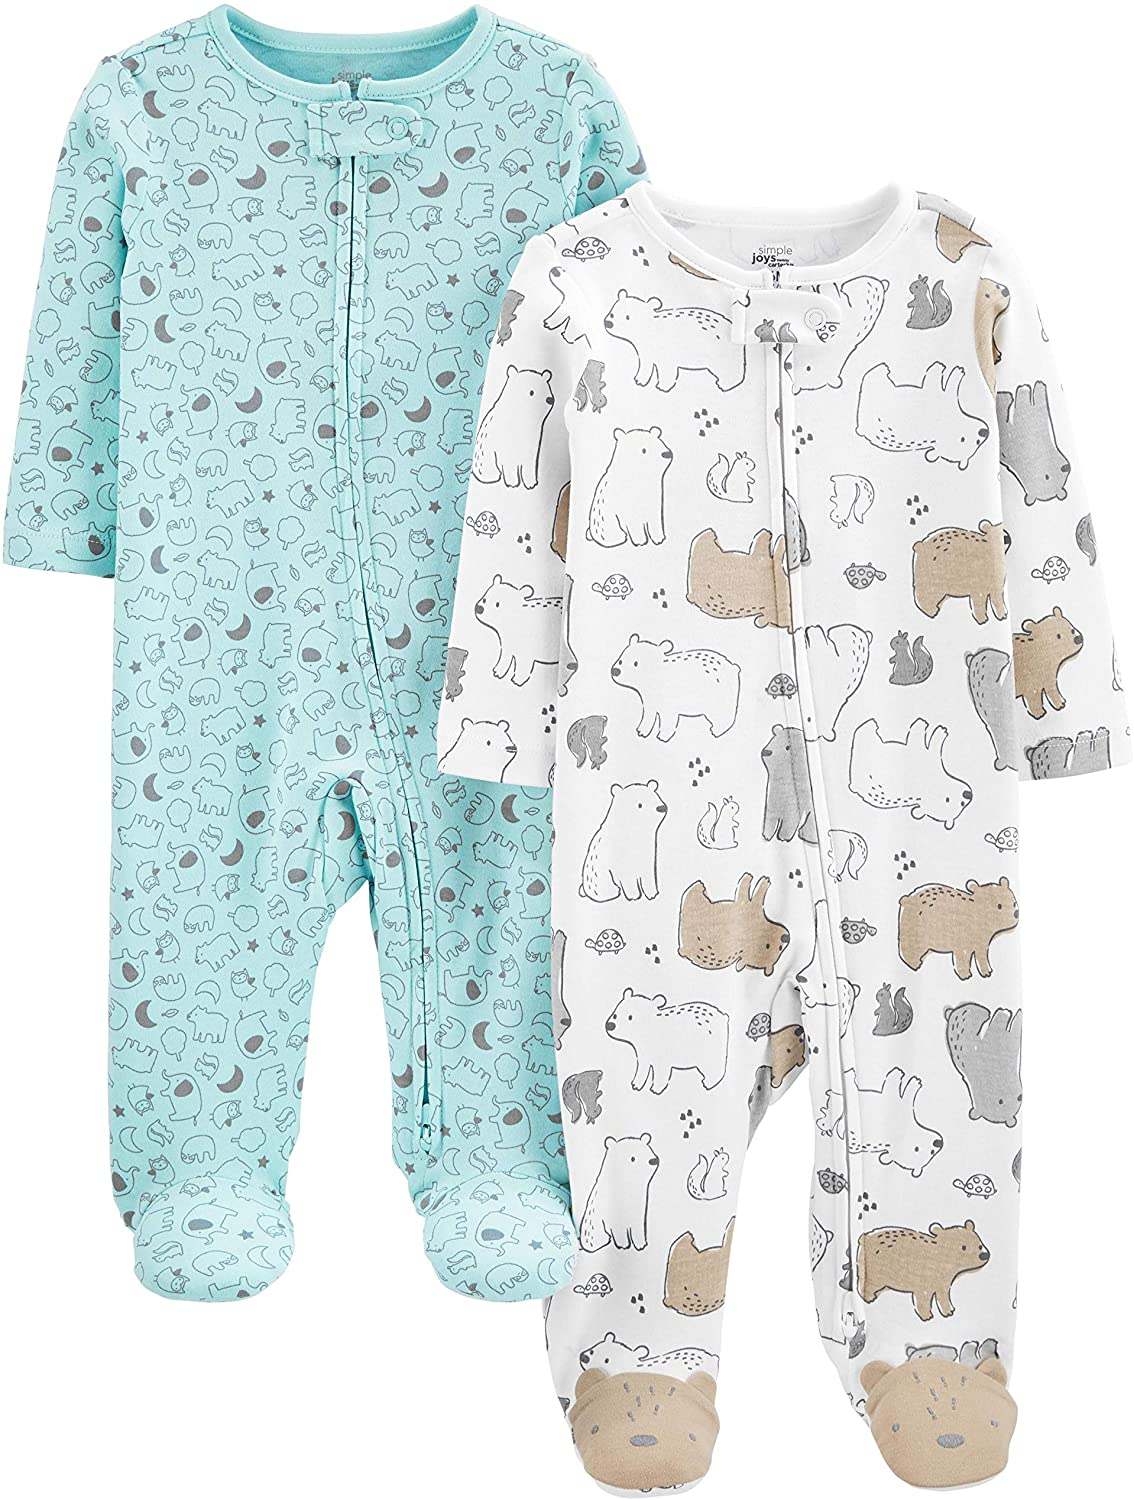 Simple Joys by Carter's Baby 2-Pack Cotton Footed Sleep and Play : Clothing, Shoes & Jewelry